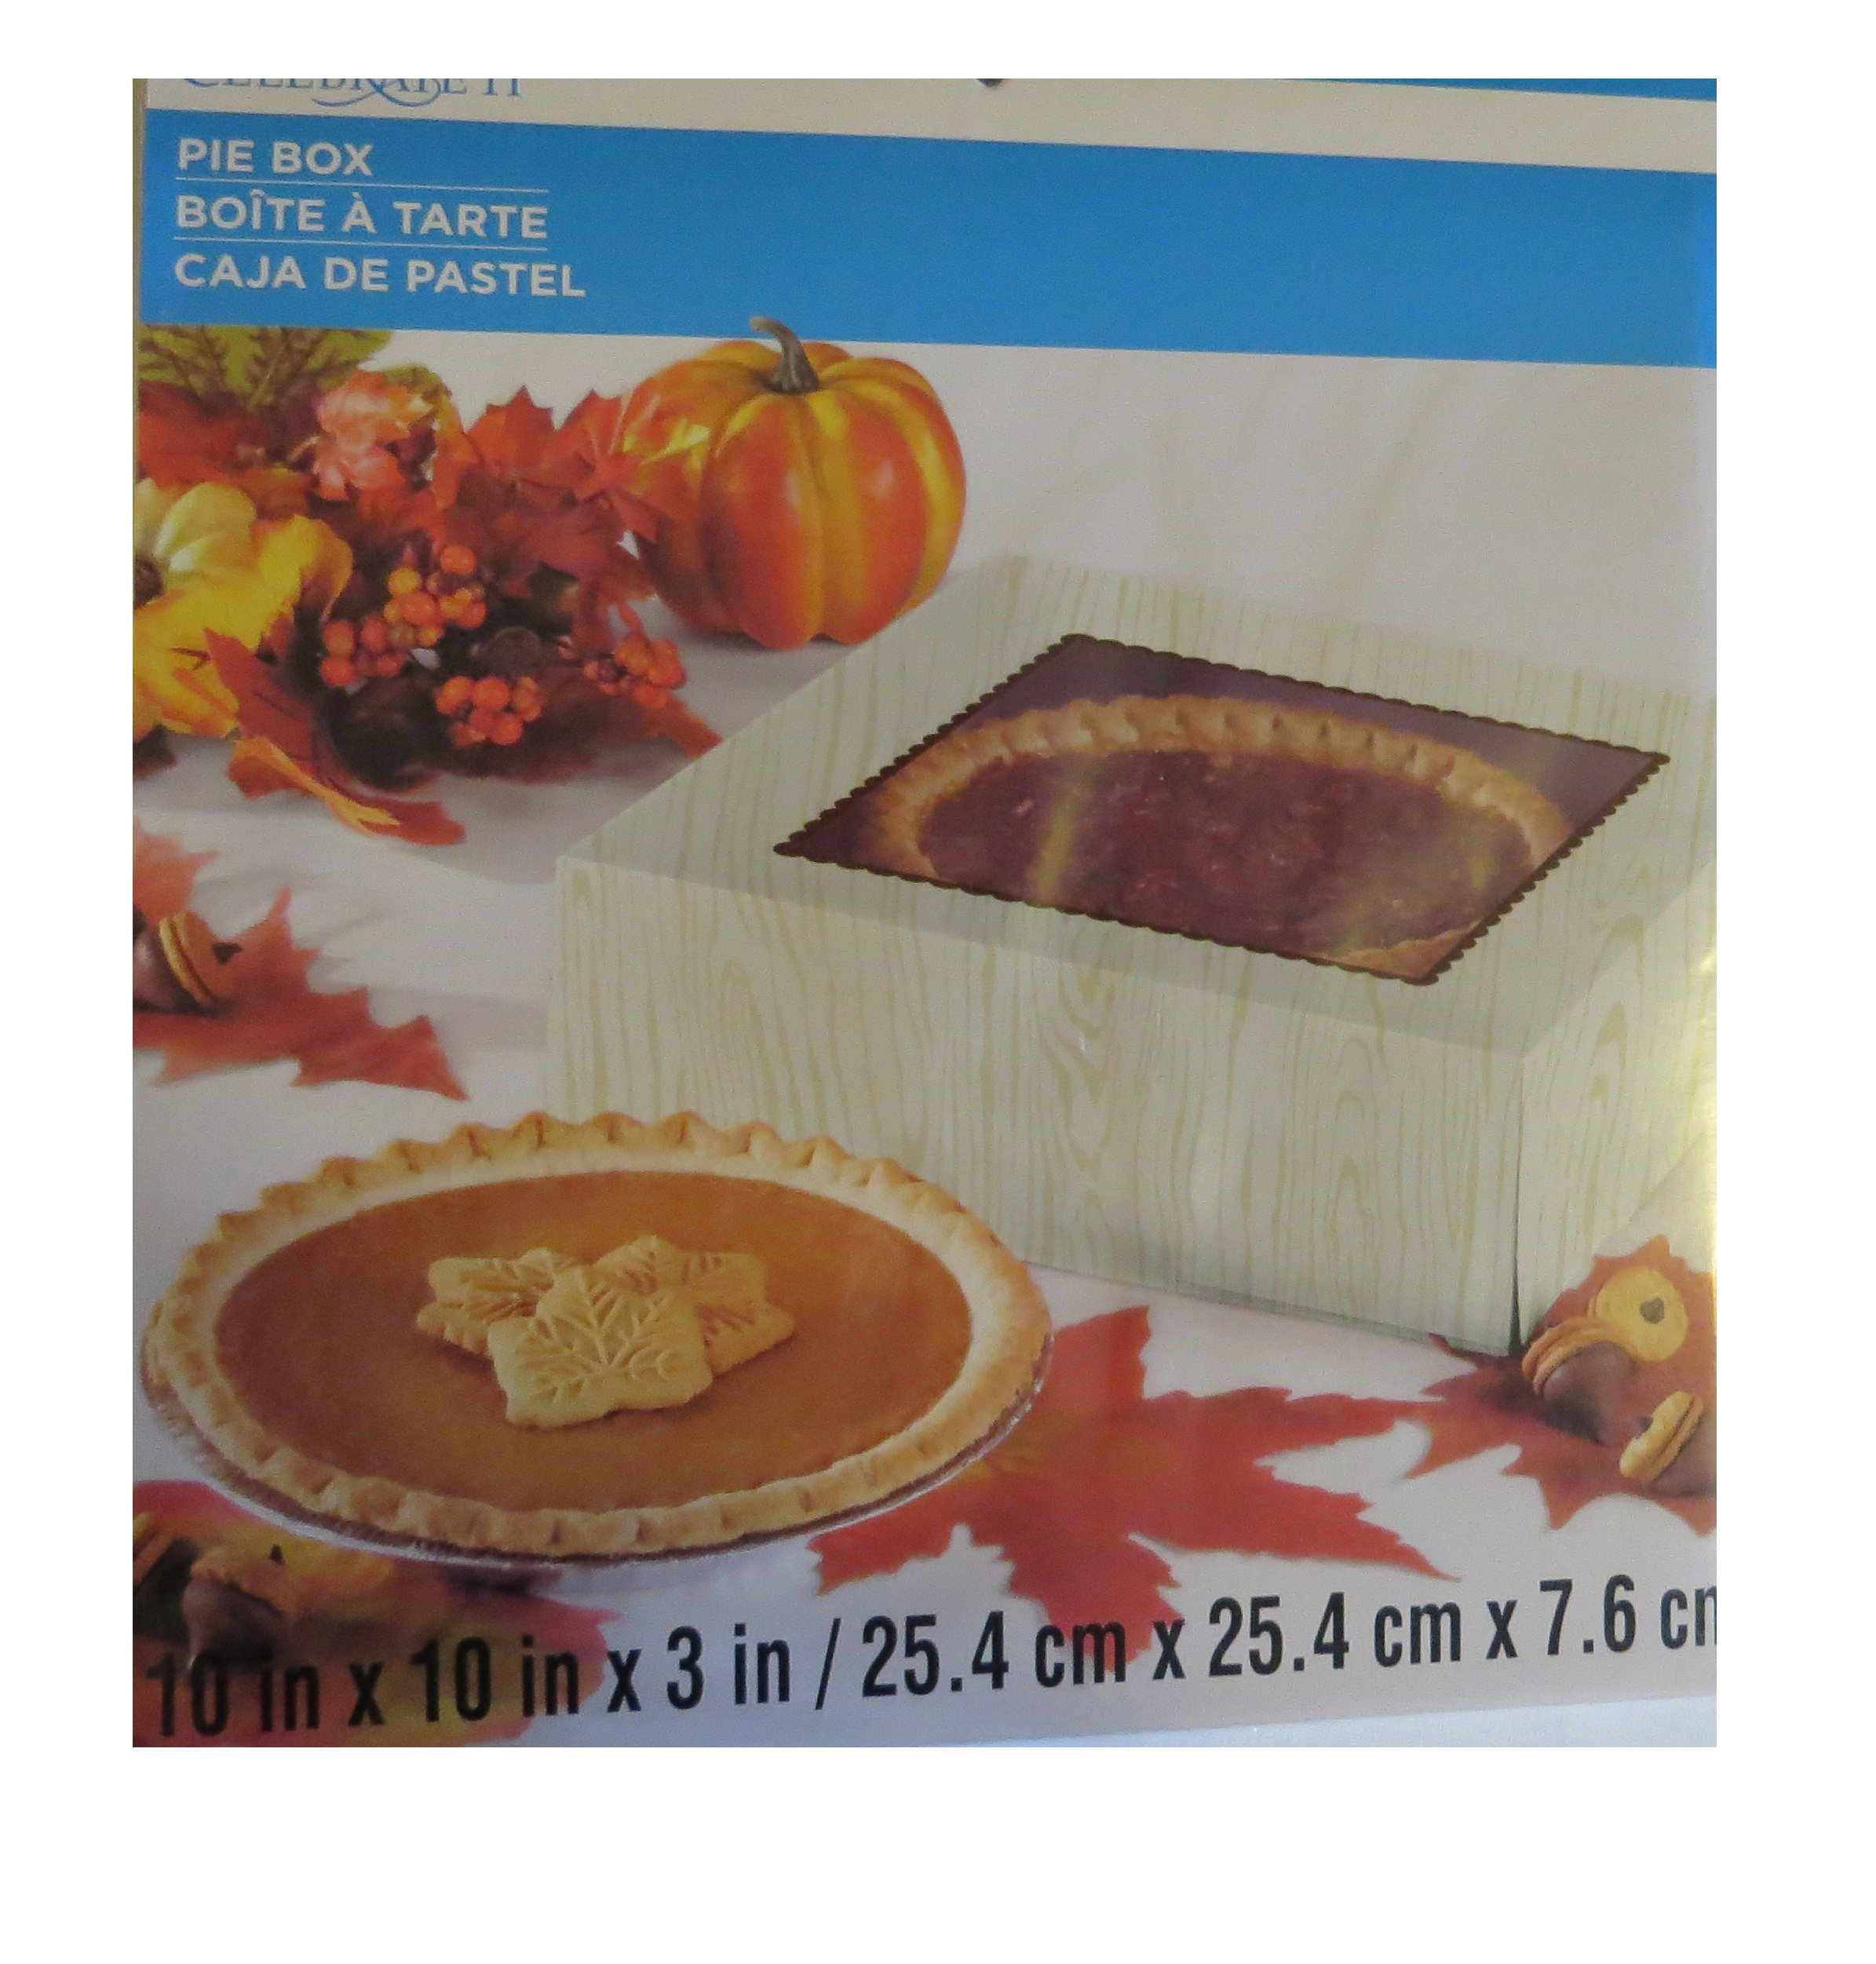 3 Thanksgiving Cardboard Pie Boxs Celebrate it Three cake Harvest pie boxes with Clear window